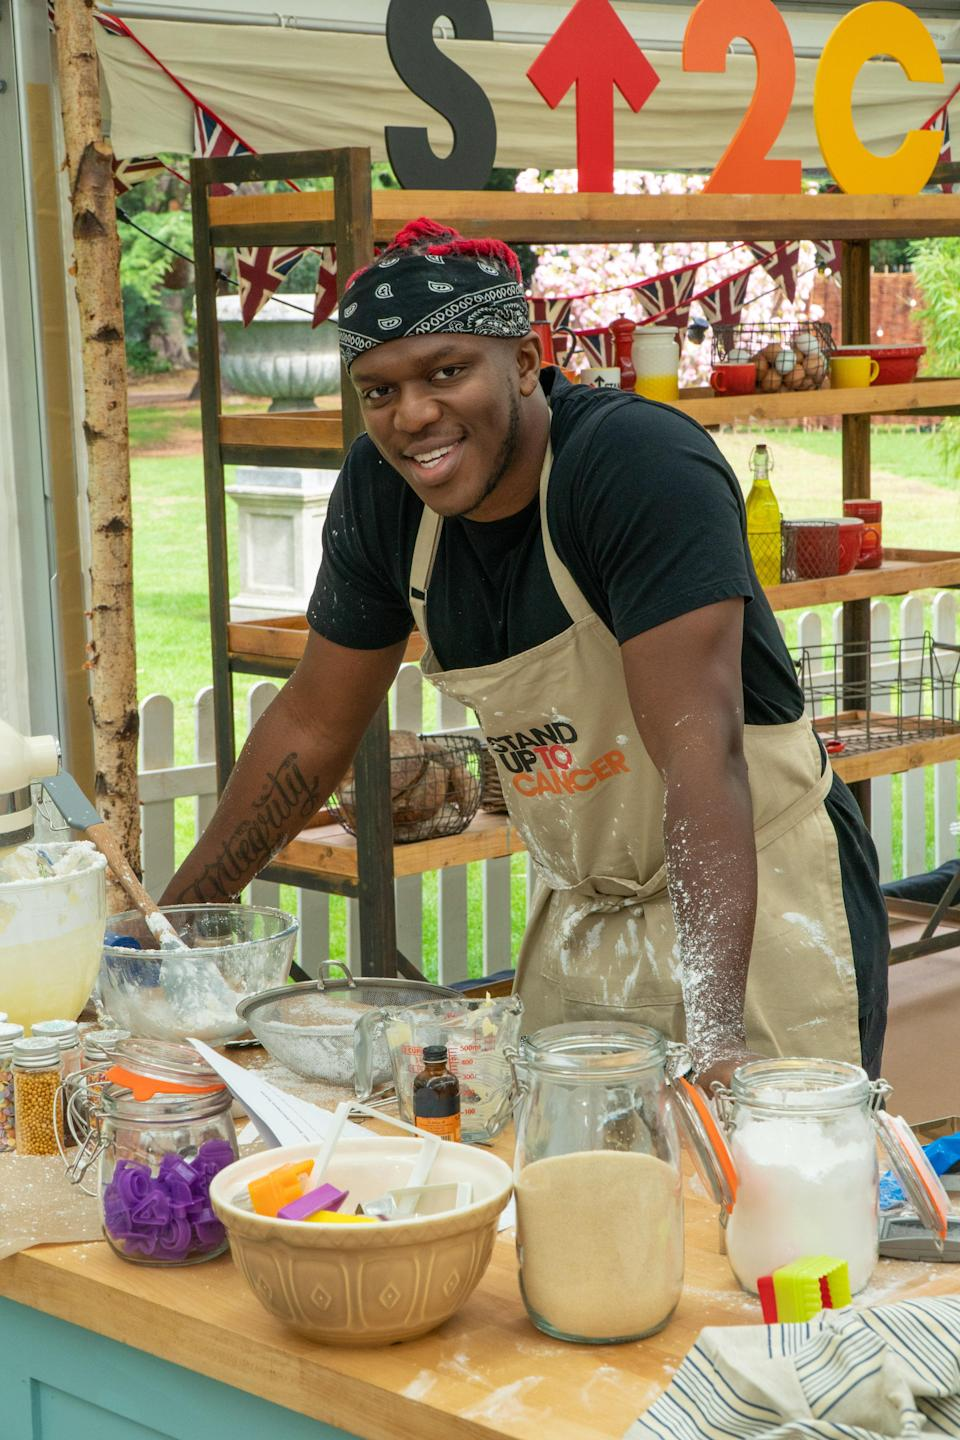 YouTuber and musician KSI will also be competing (Channel 4/Love Productions)